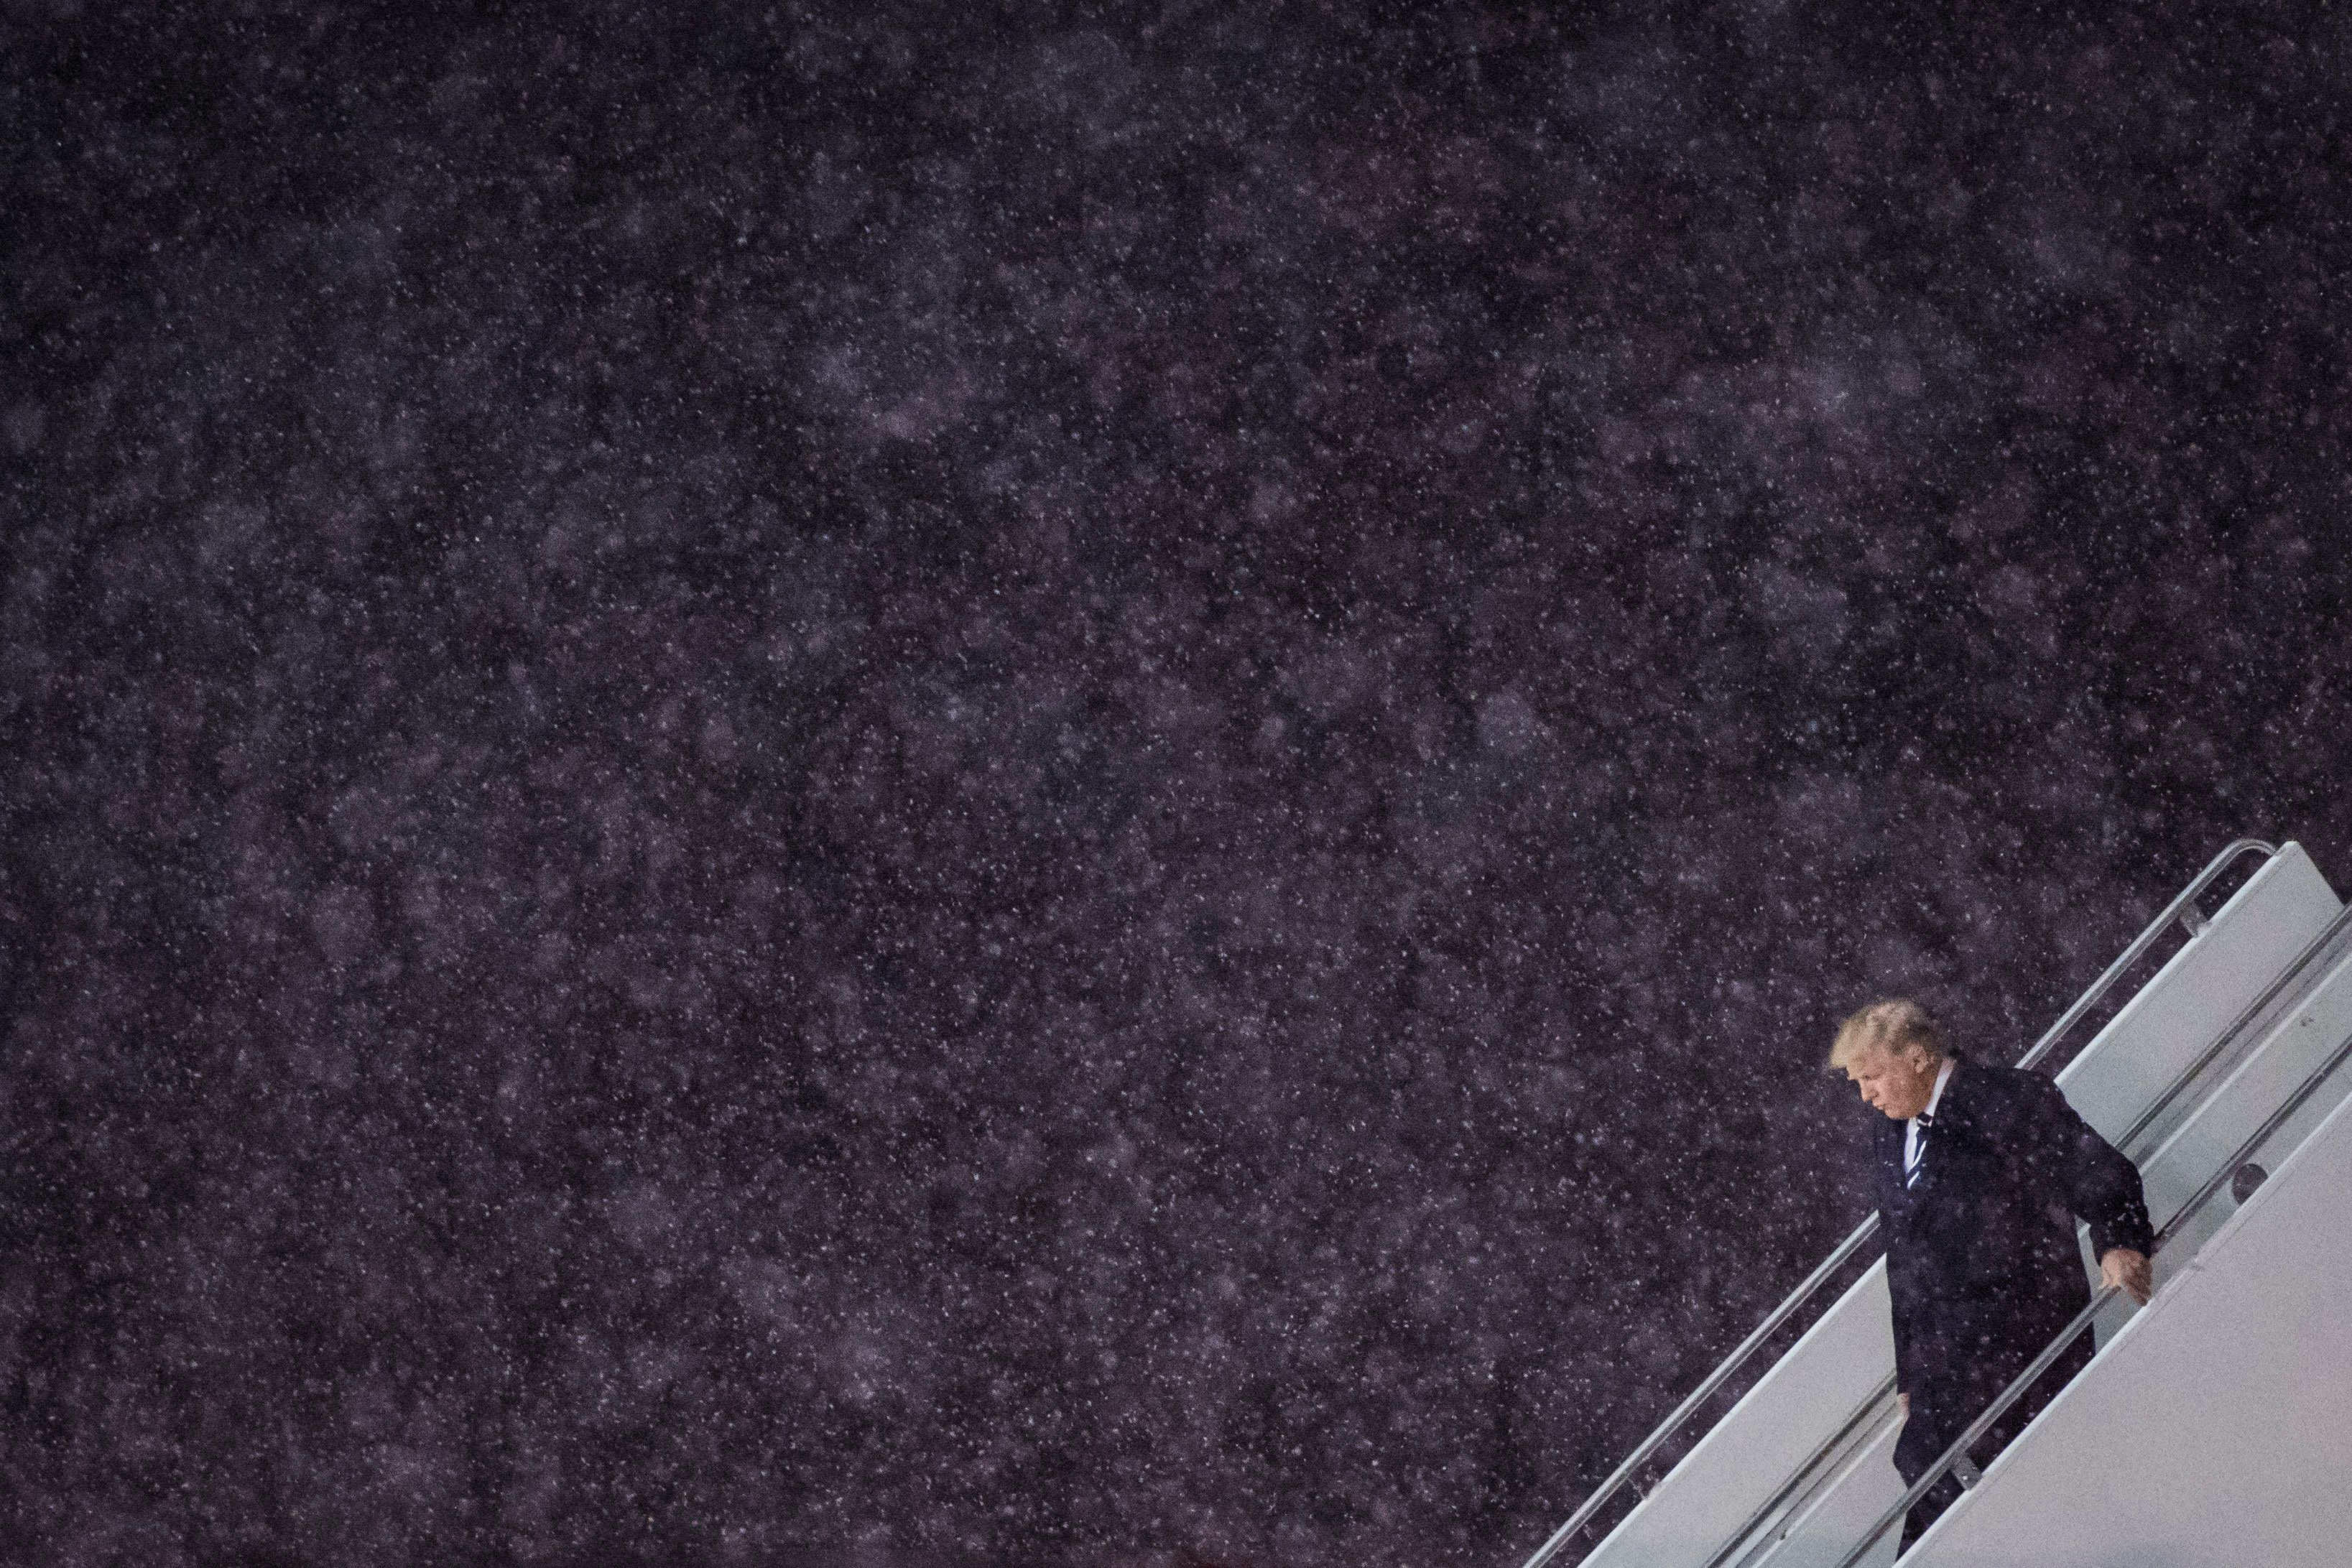 GRAND RAPIDS, MI - DECEMBER 9: President-Elect Donald J. Trump disembarks his plane in the snow as he makes his way to a 'USA Thank You Tour 2016' event at the DeltaPlex in Grand Rapids, Mi. on Friday, Dec. 09, 2016. (Photo by Jabin Botsford/The Washington Post via Getty Images)